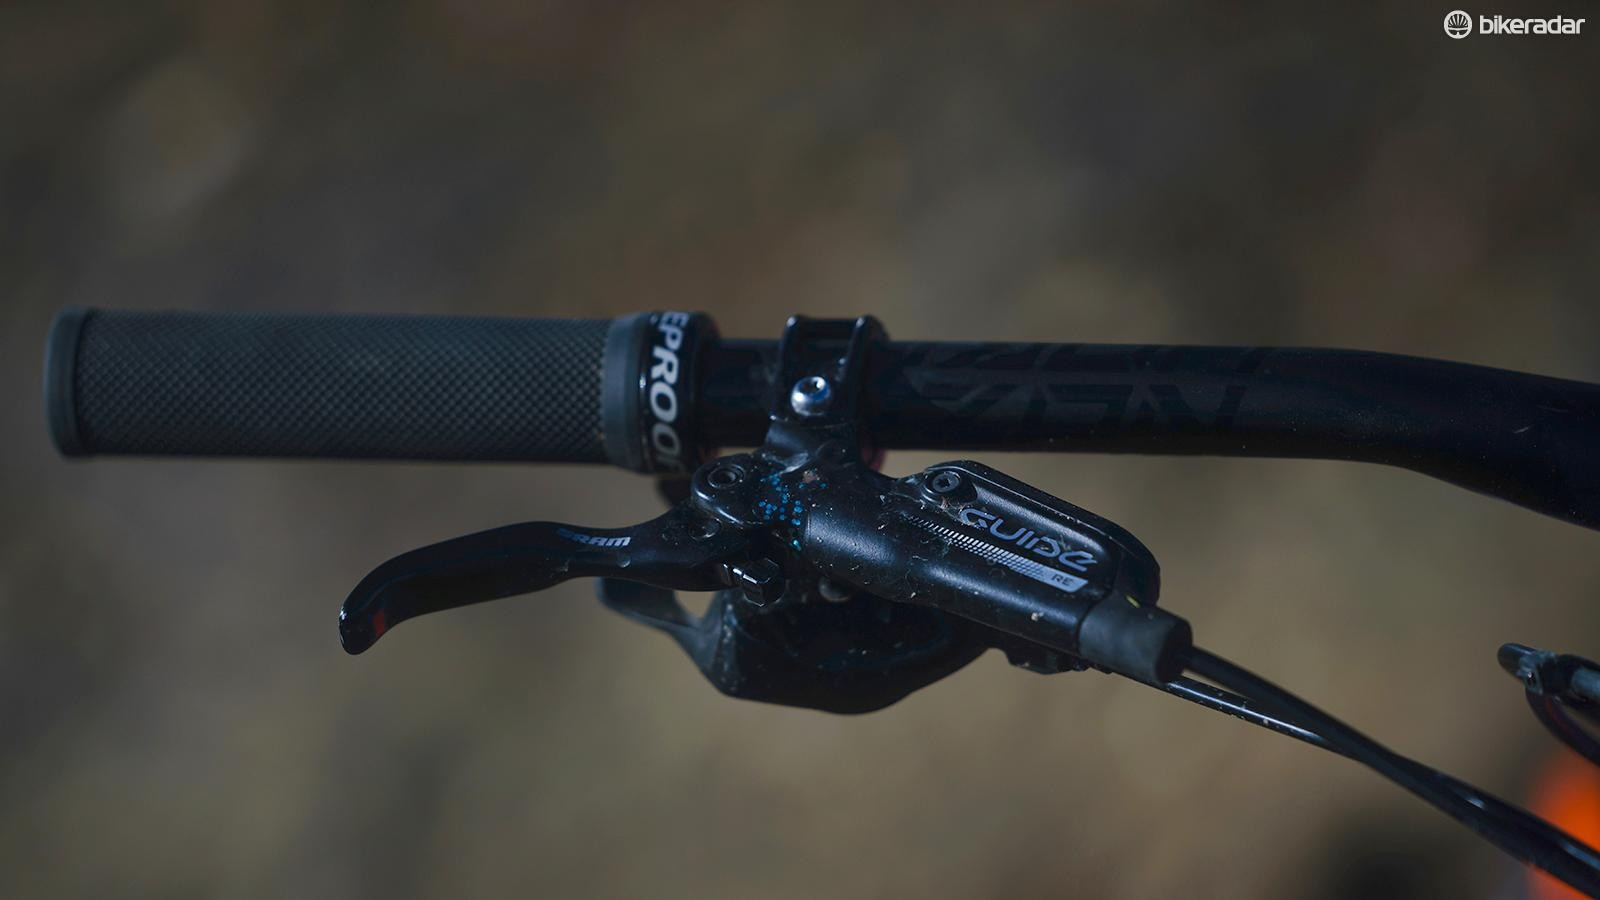 SRAM's Guide RE brakes offer consistent feel and power, even on brutally steep downhill trails